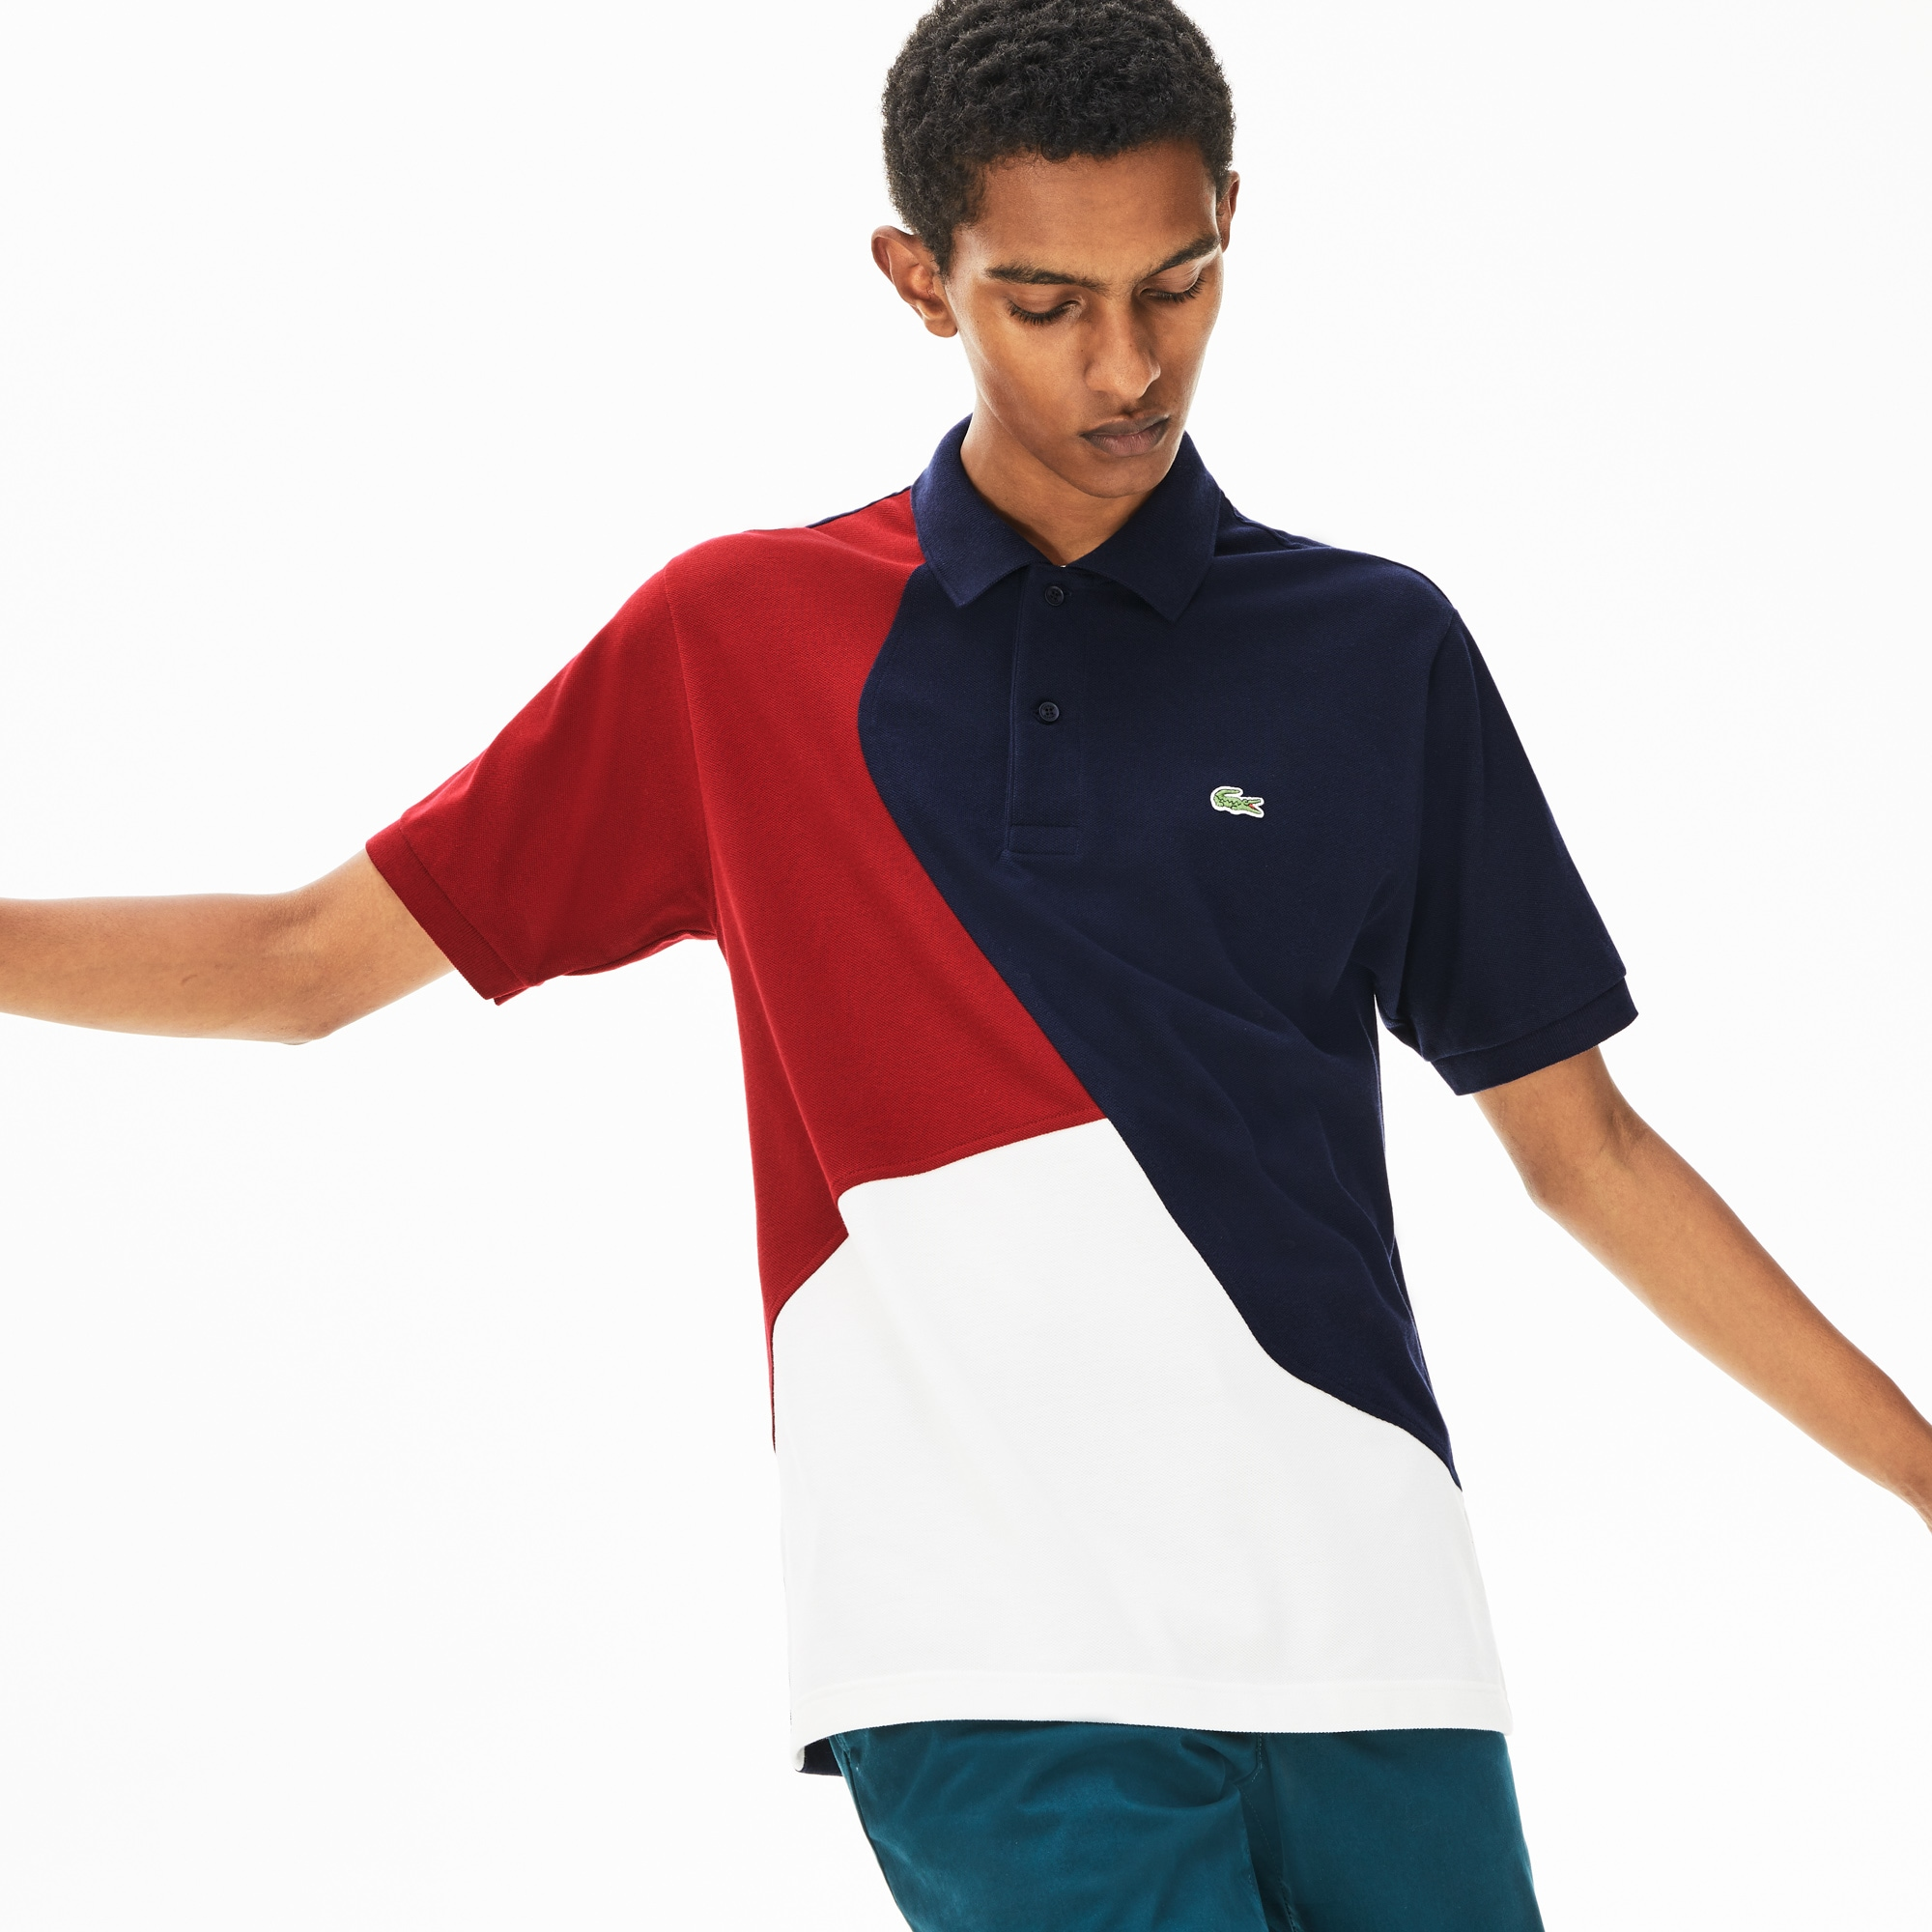 Lacoste Tops Men's L.12.12 Color-Blocked Thermoregulating Piqué Polo